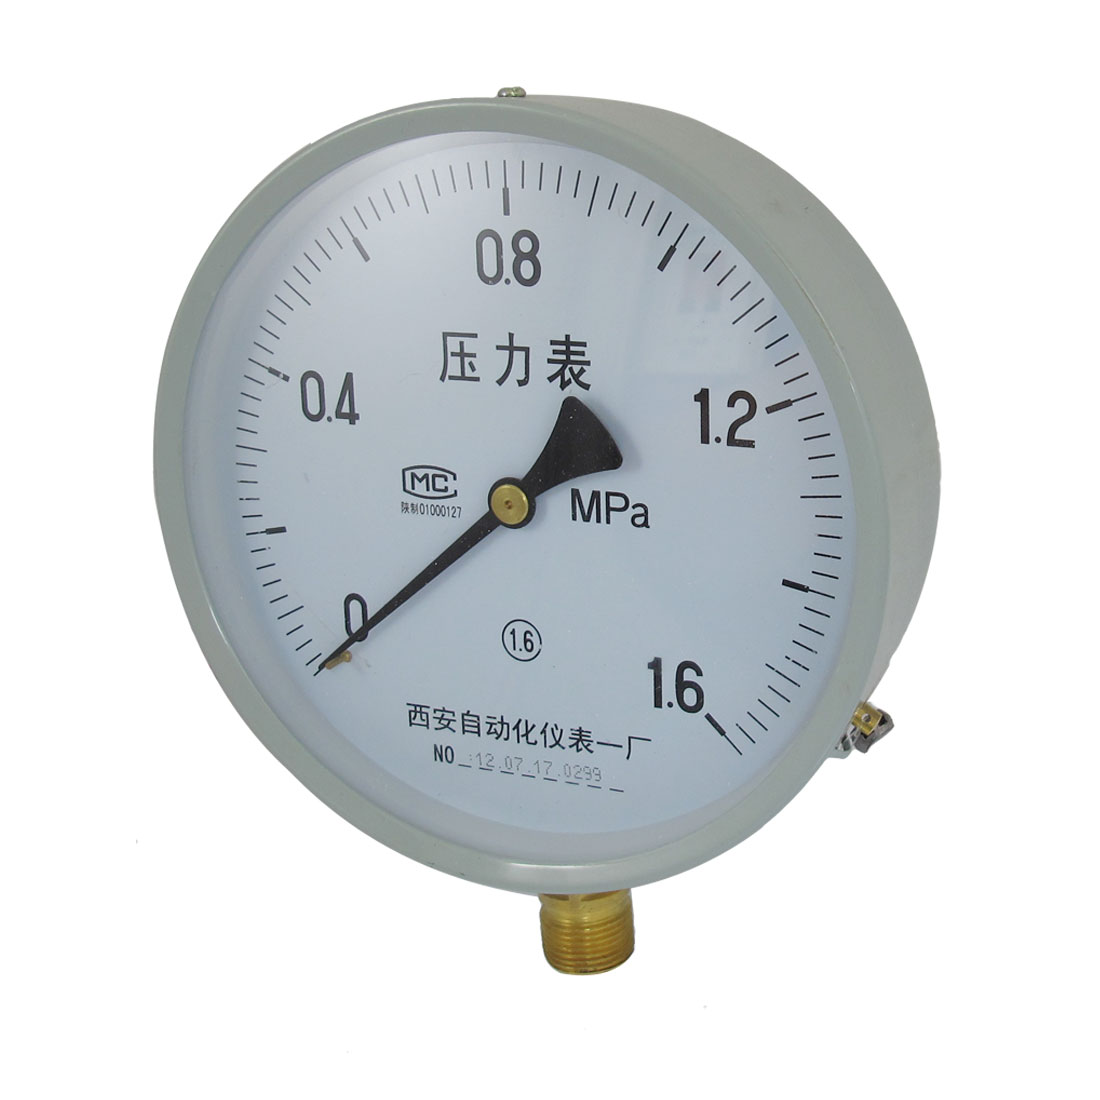 0-1.6Mpa 20mm Thread Horizontal Mount Pipeline Pressure Gauge Y-150